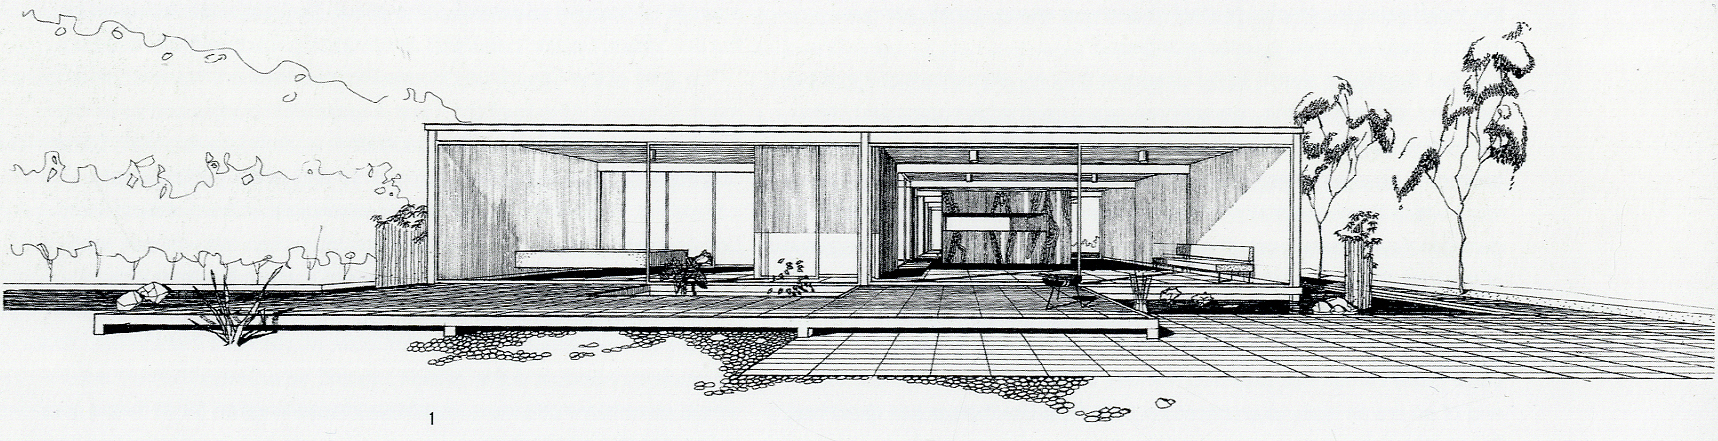 A Virtual Look Into Pierre Koenig\'s Case Study House #21, The Bailey ...